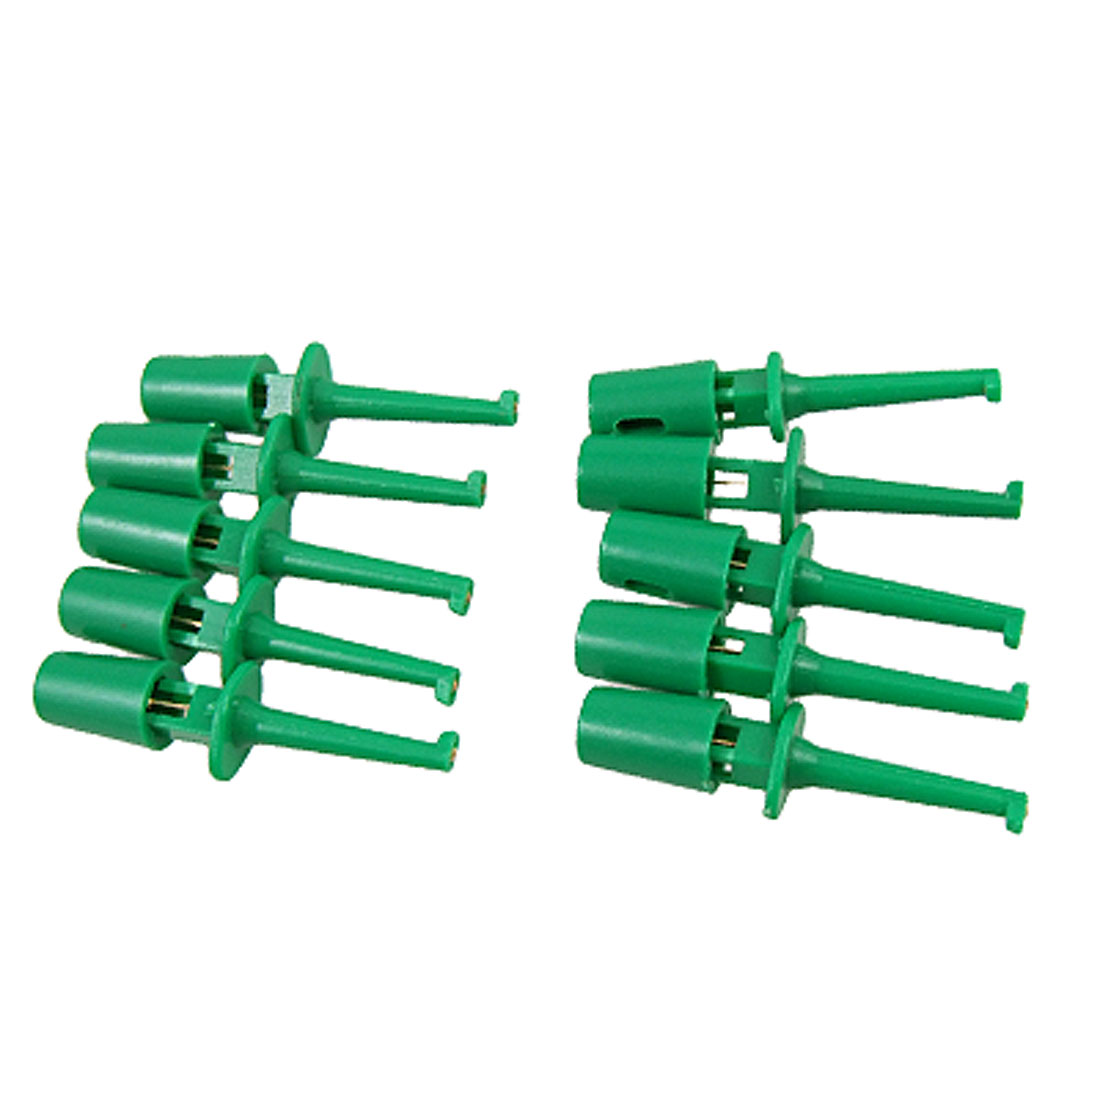 Green Electrical Lead Wire Testing Hooks Clip Set 10Pcs